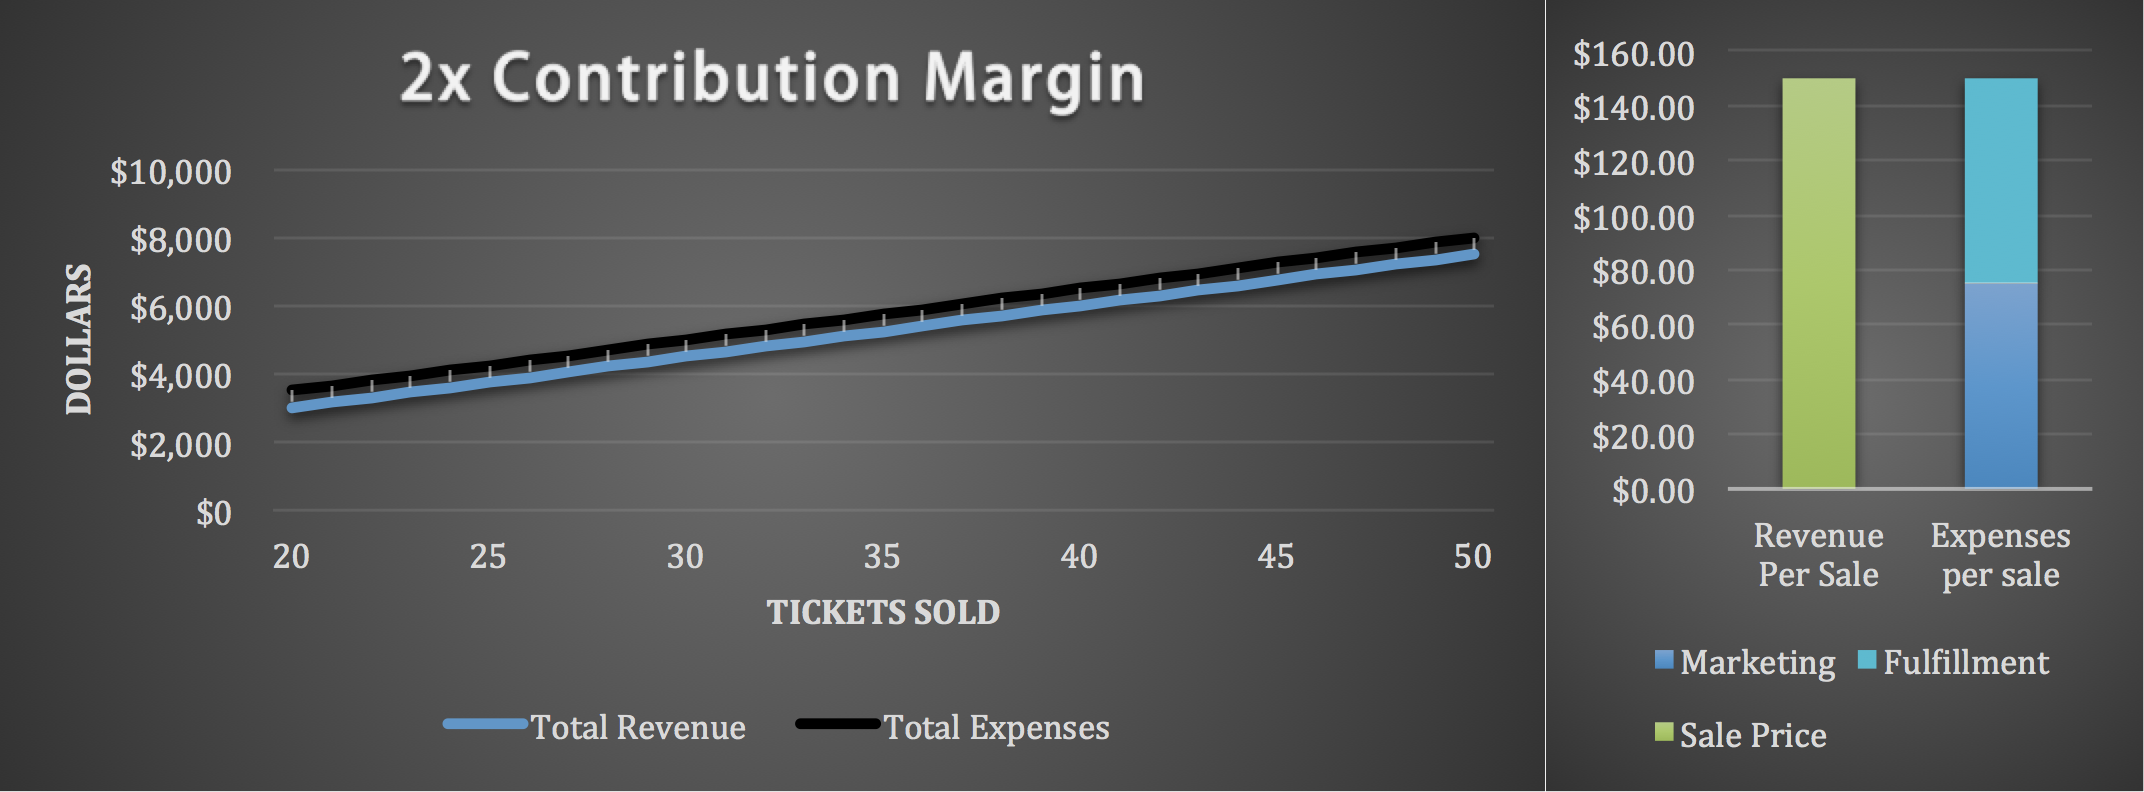 2X Contribution Margin